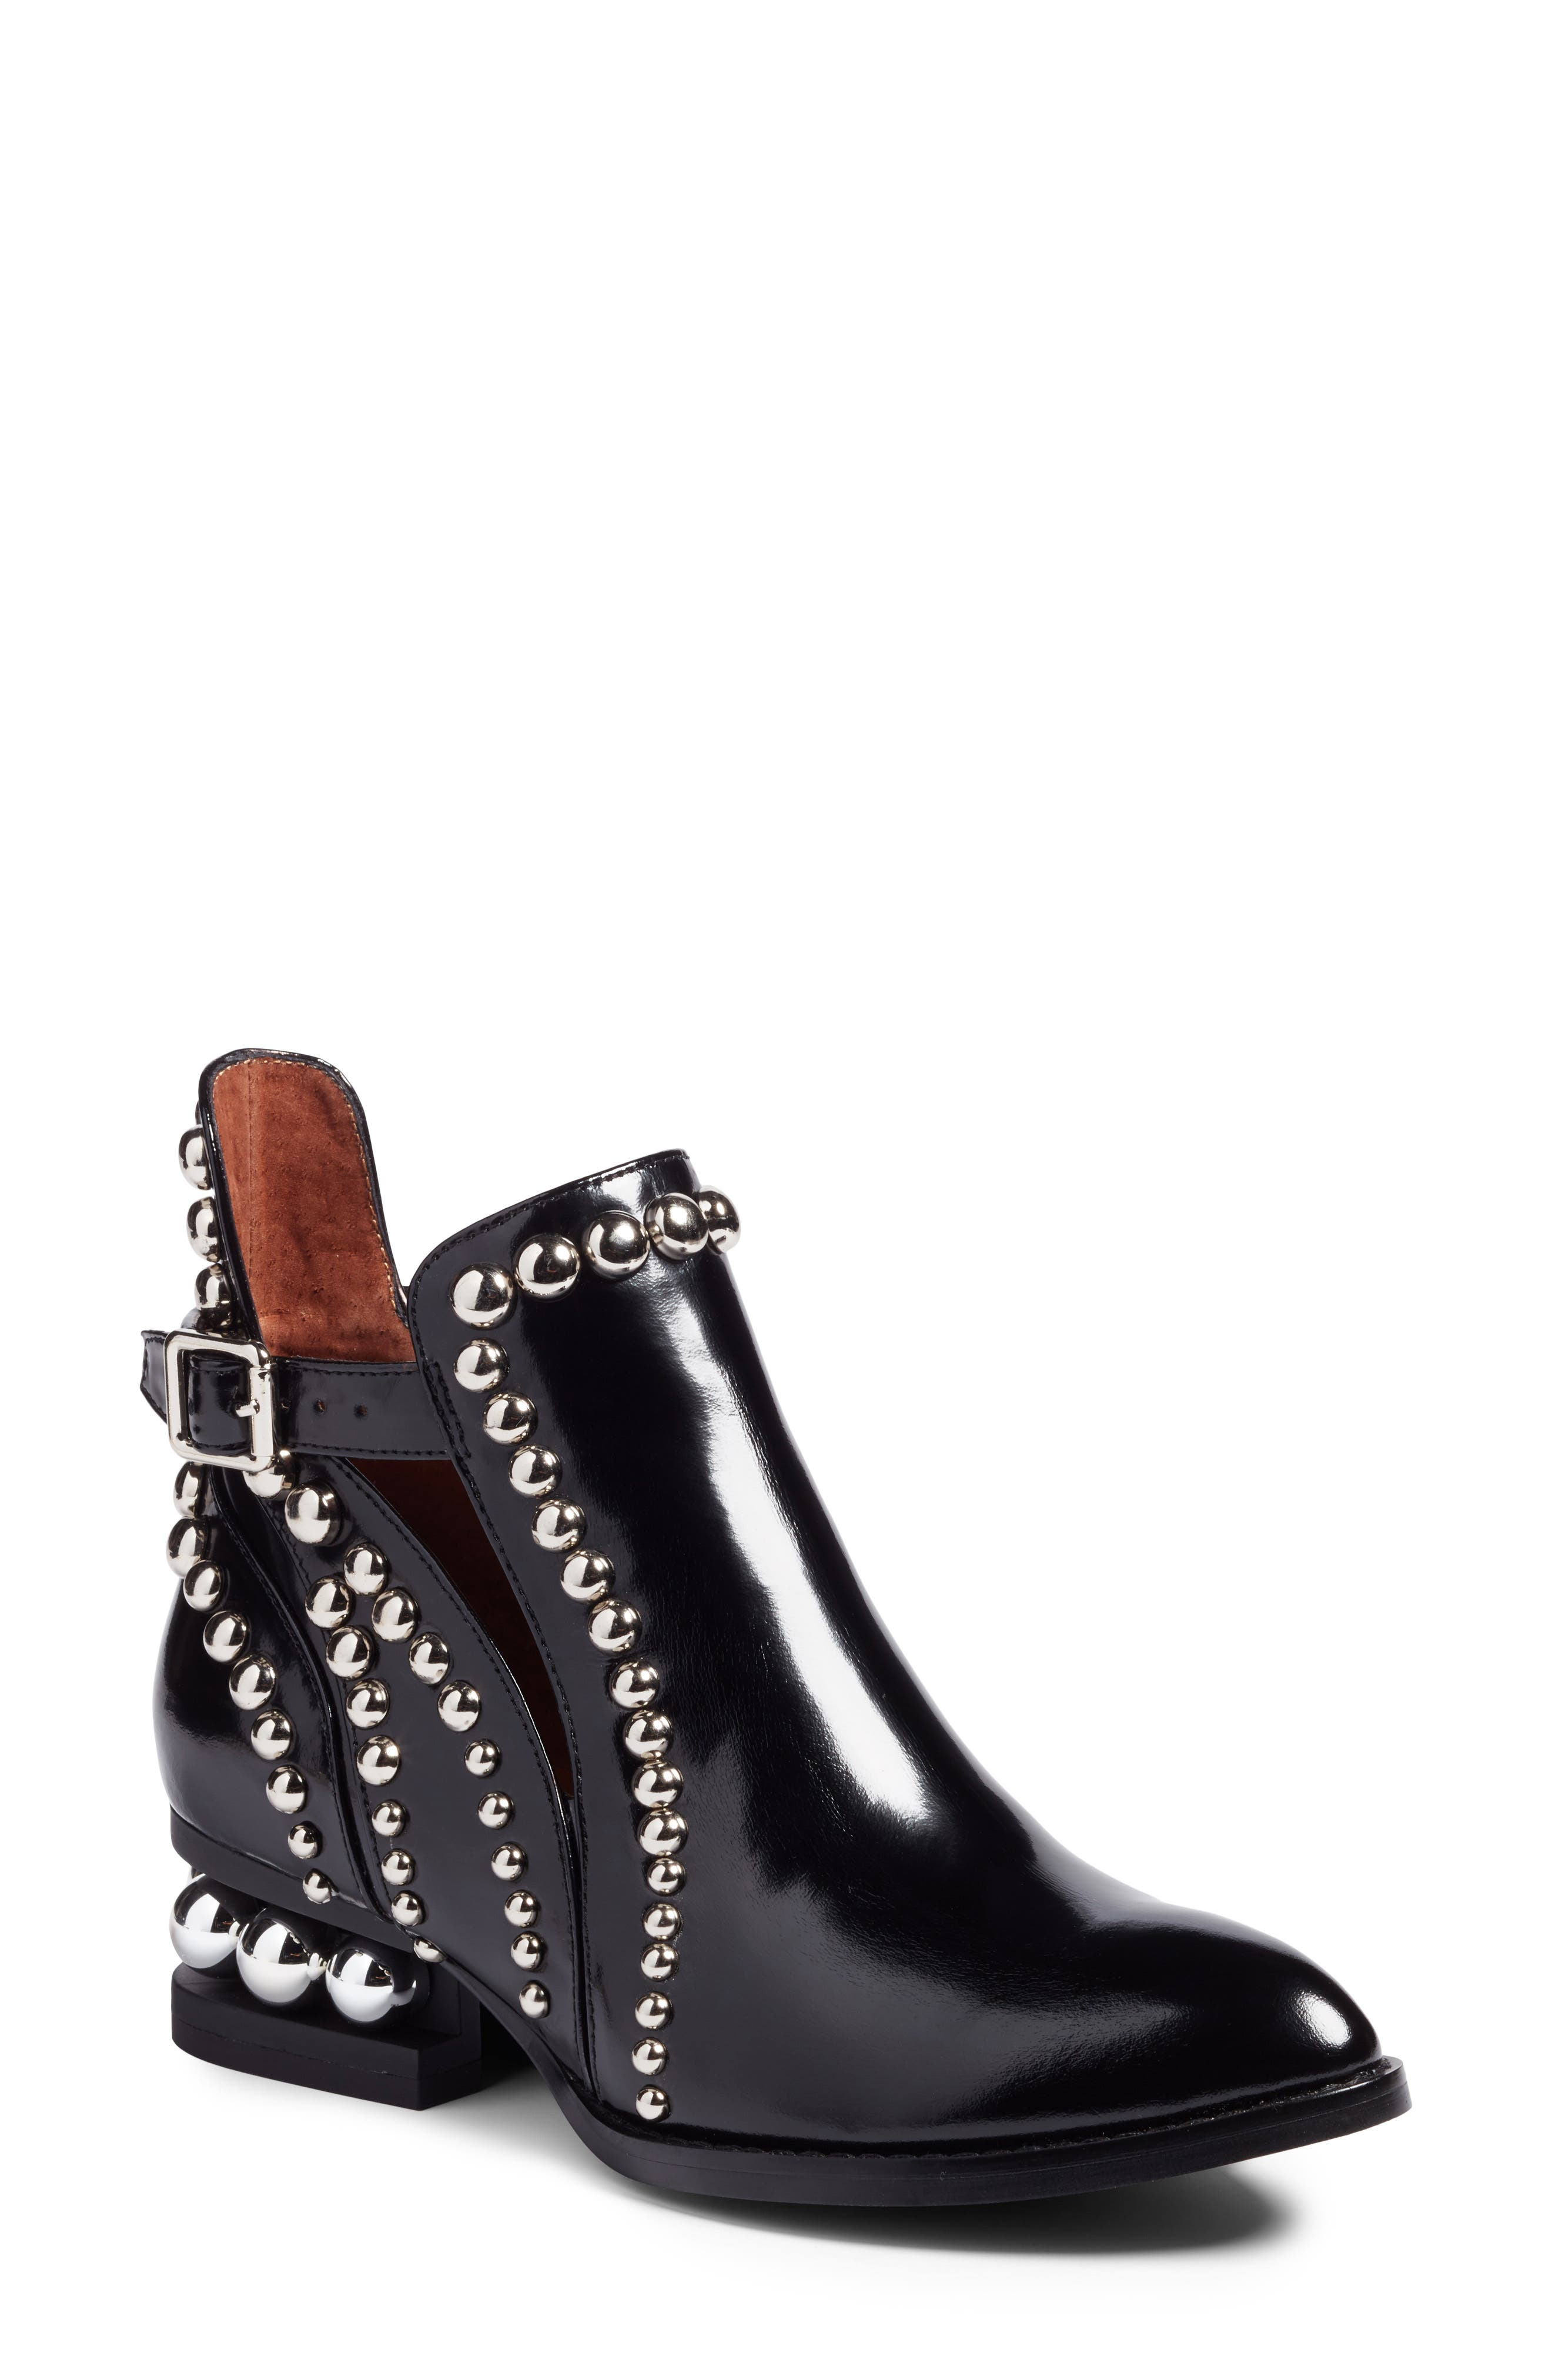 Rylance Studded Bootie,                             Main thumbnail 1, color,                             001